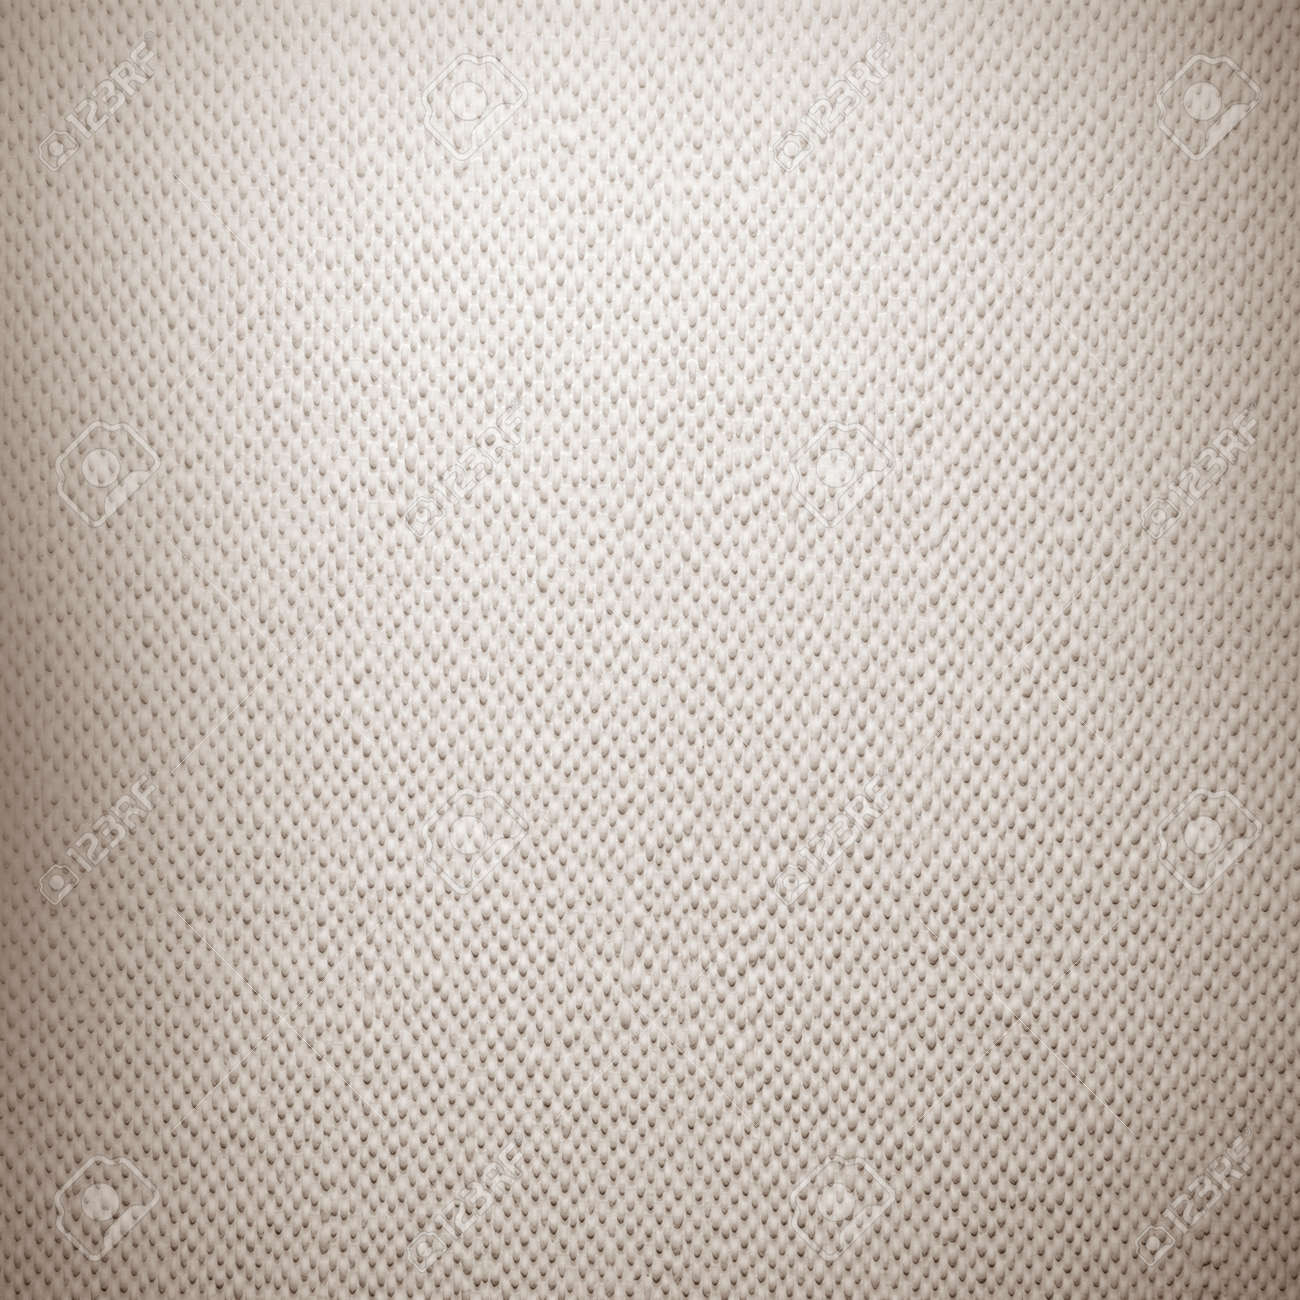 old paper texture grunge background canvas pattern and vignette